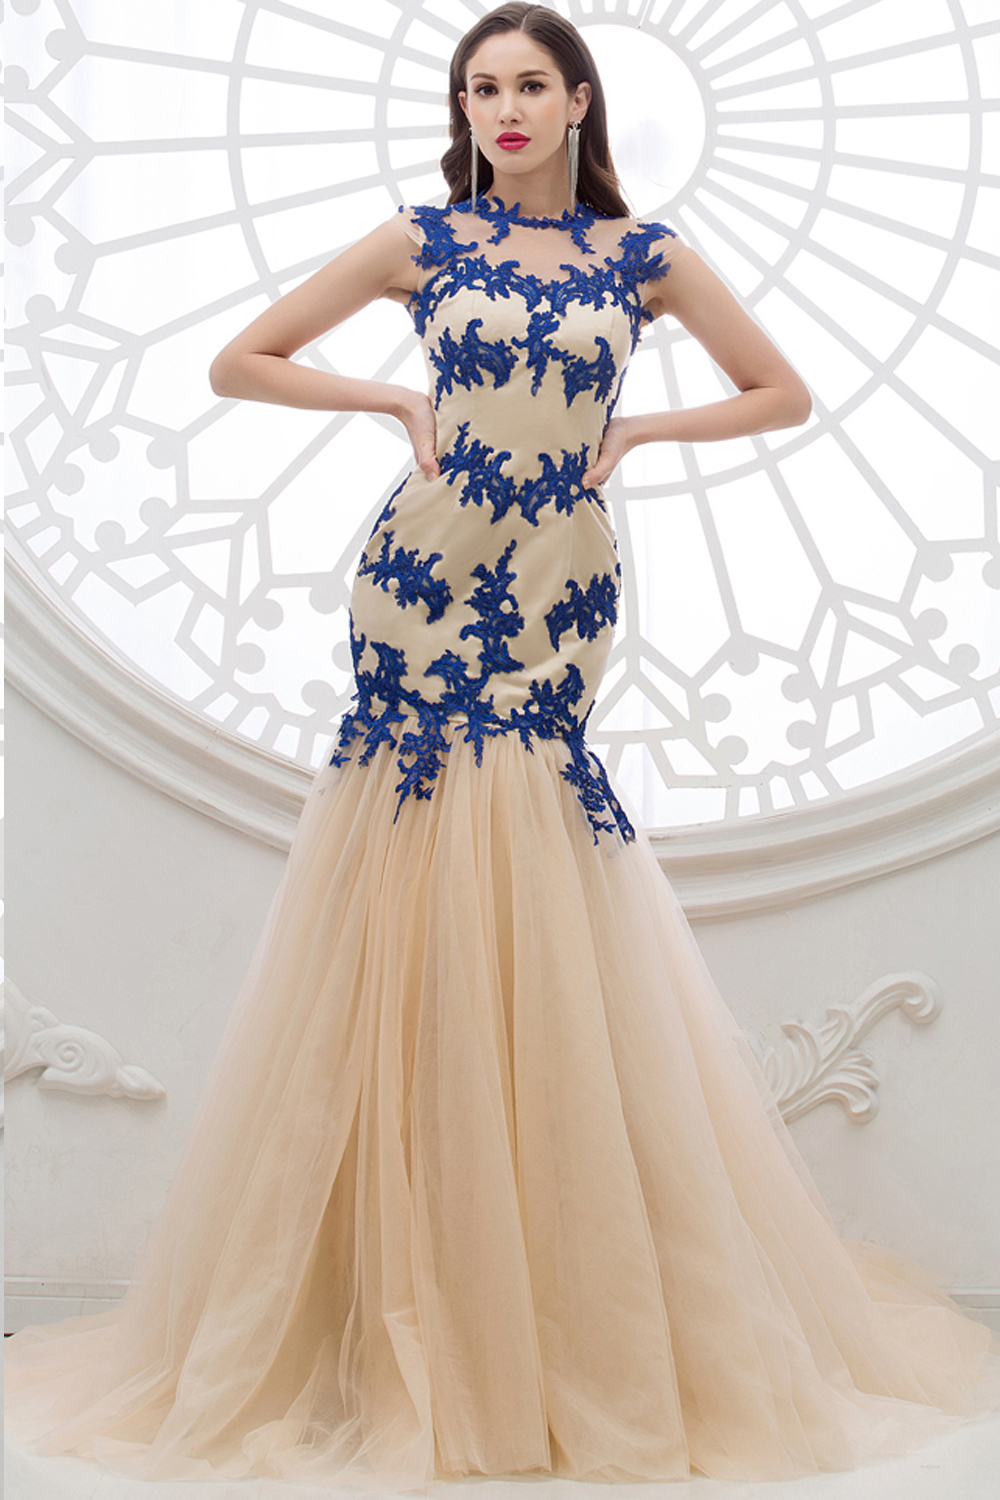 Sheath/Column Jewel Neck Floor Length Tulle Evening Dress with Appliques